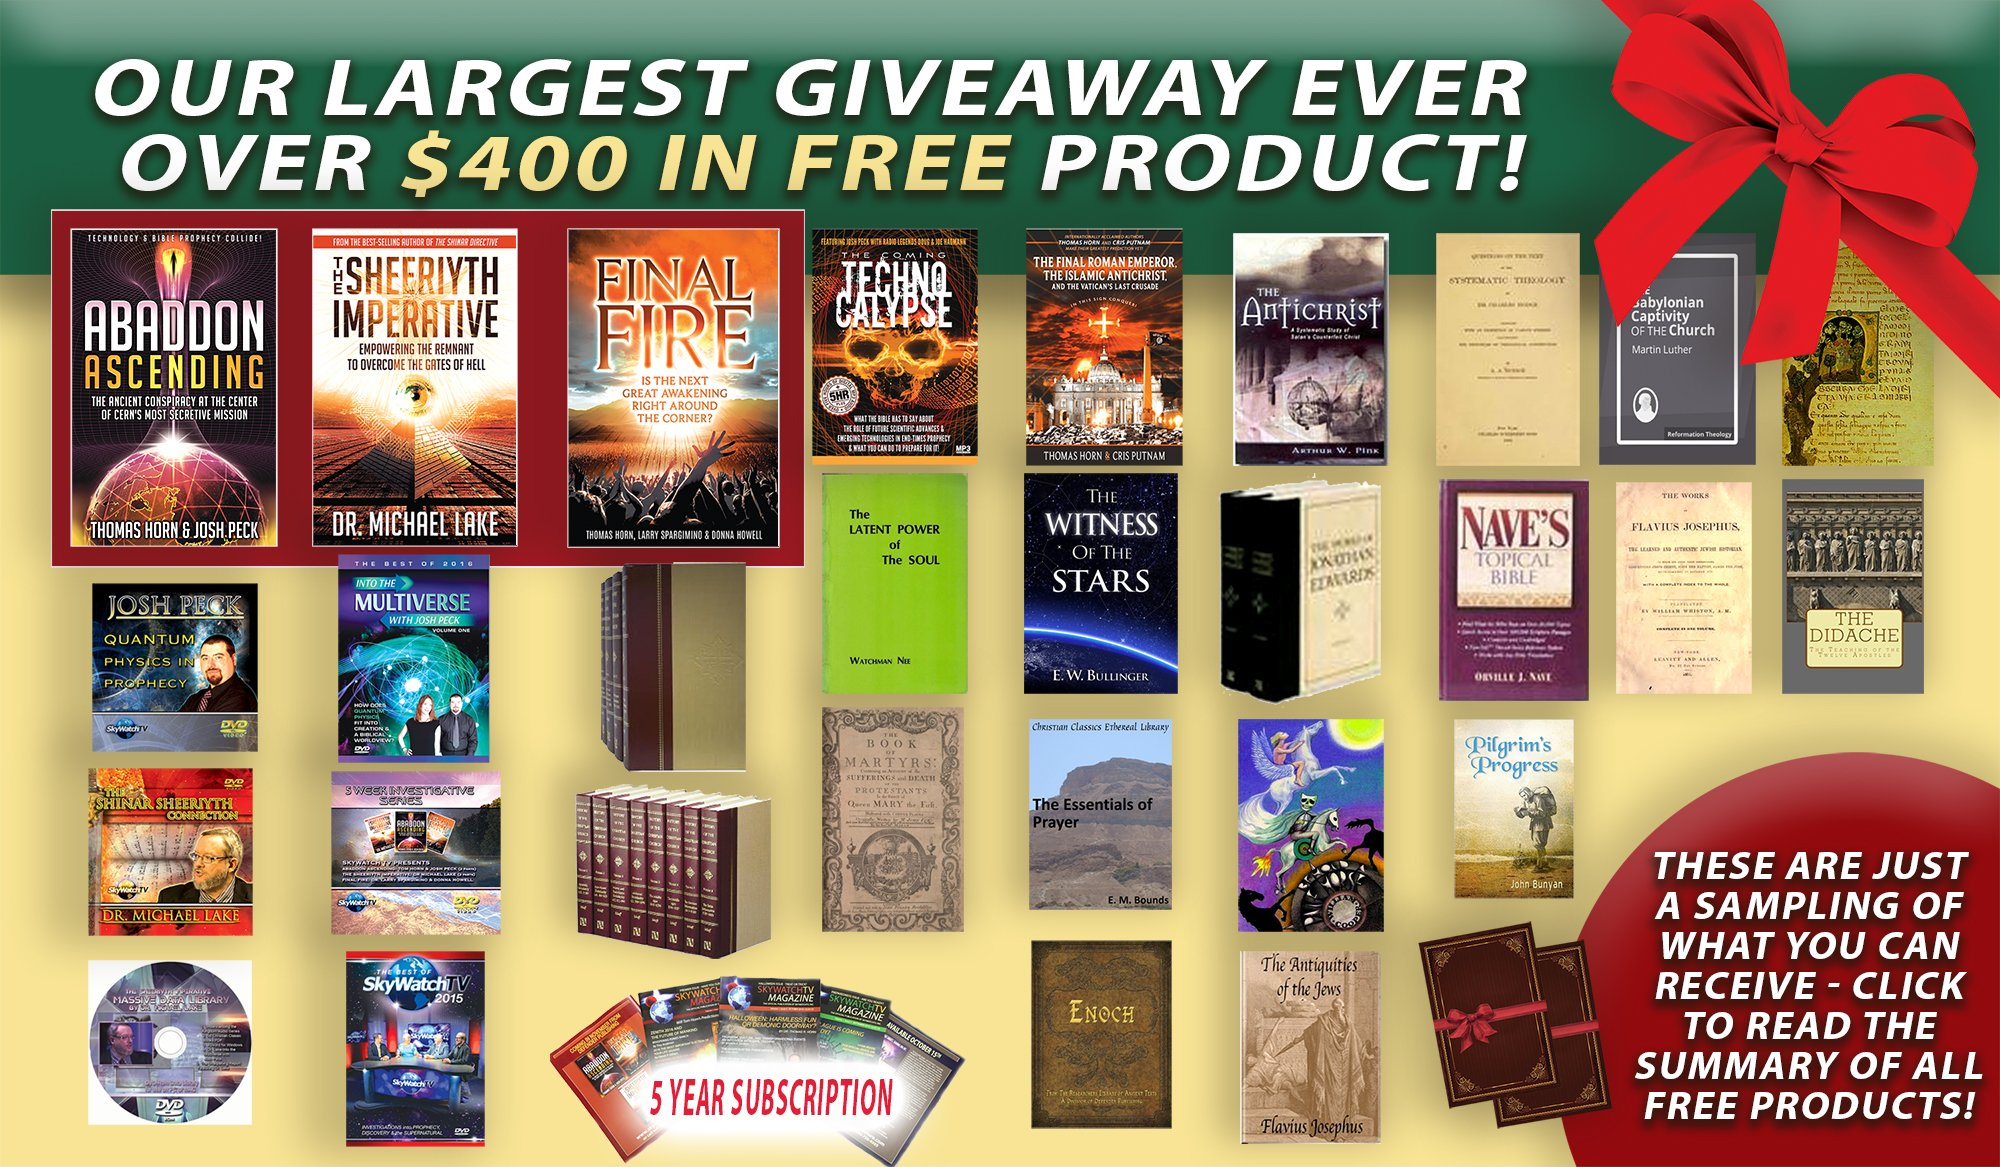 TIME RUNNING OUT TO GET THE BIGGEST GIVEAWAY IN OUR HISTORY! OVER $400.00 IN MERCHANDISE!